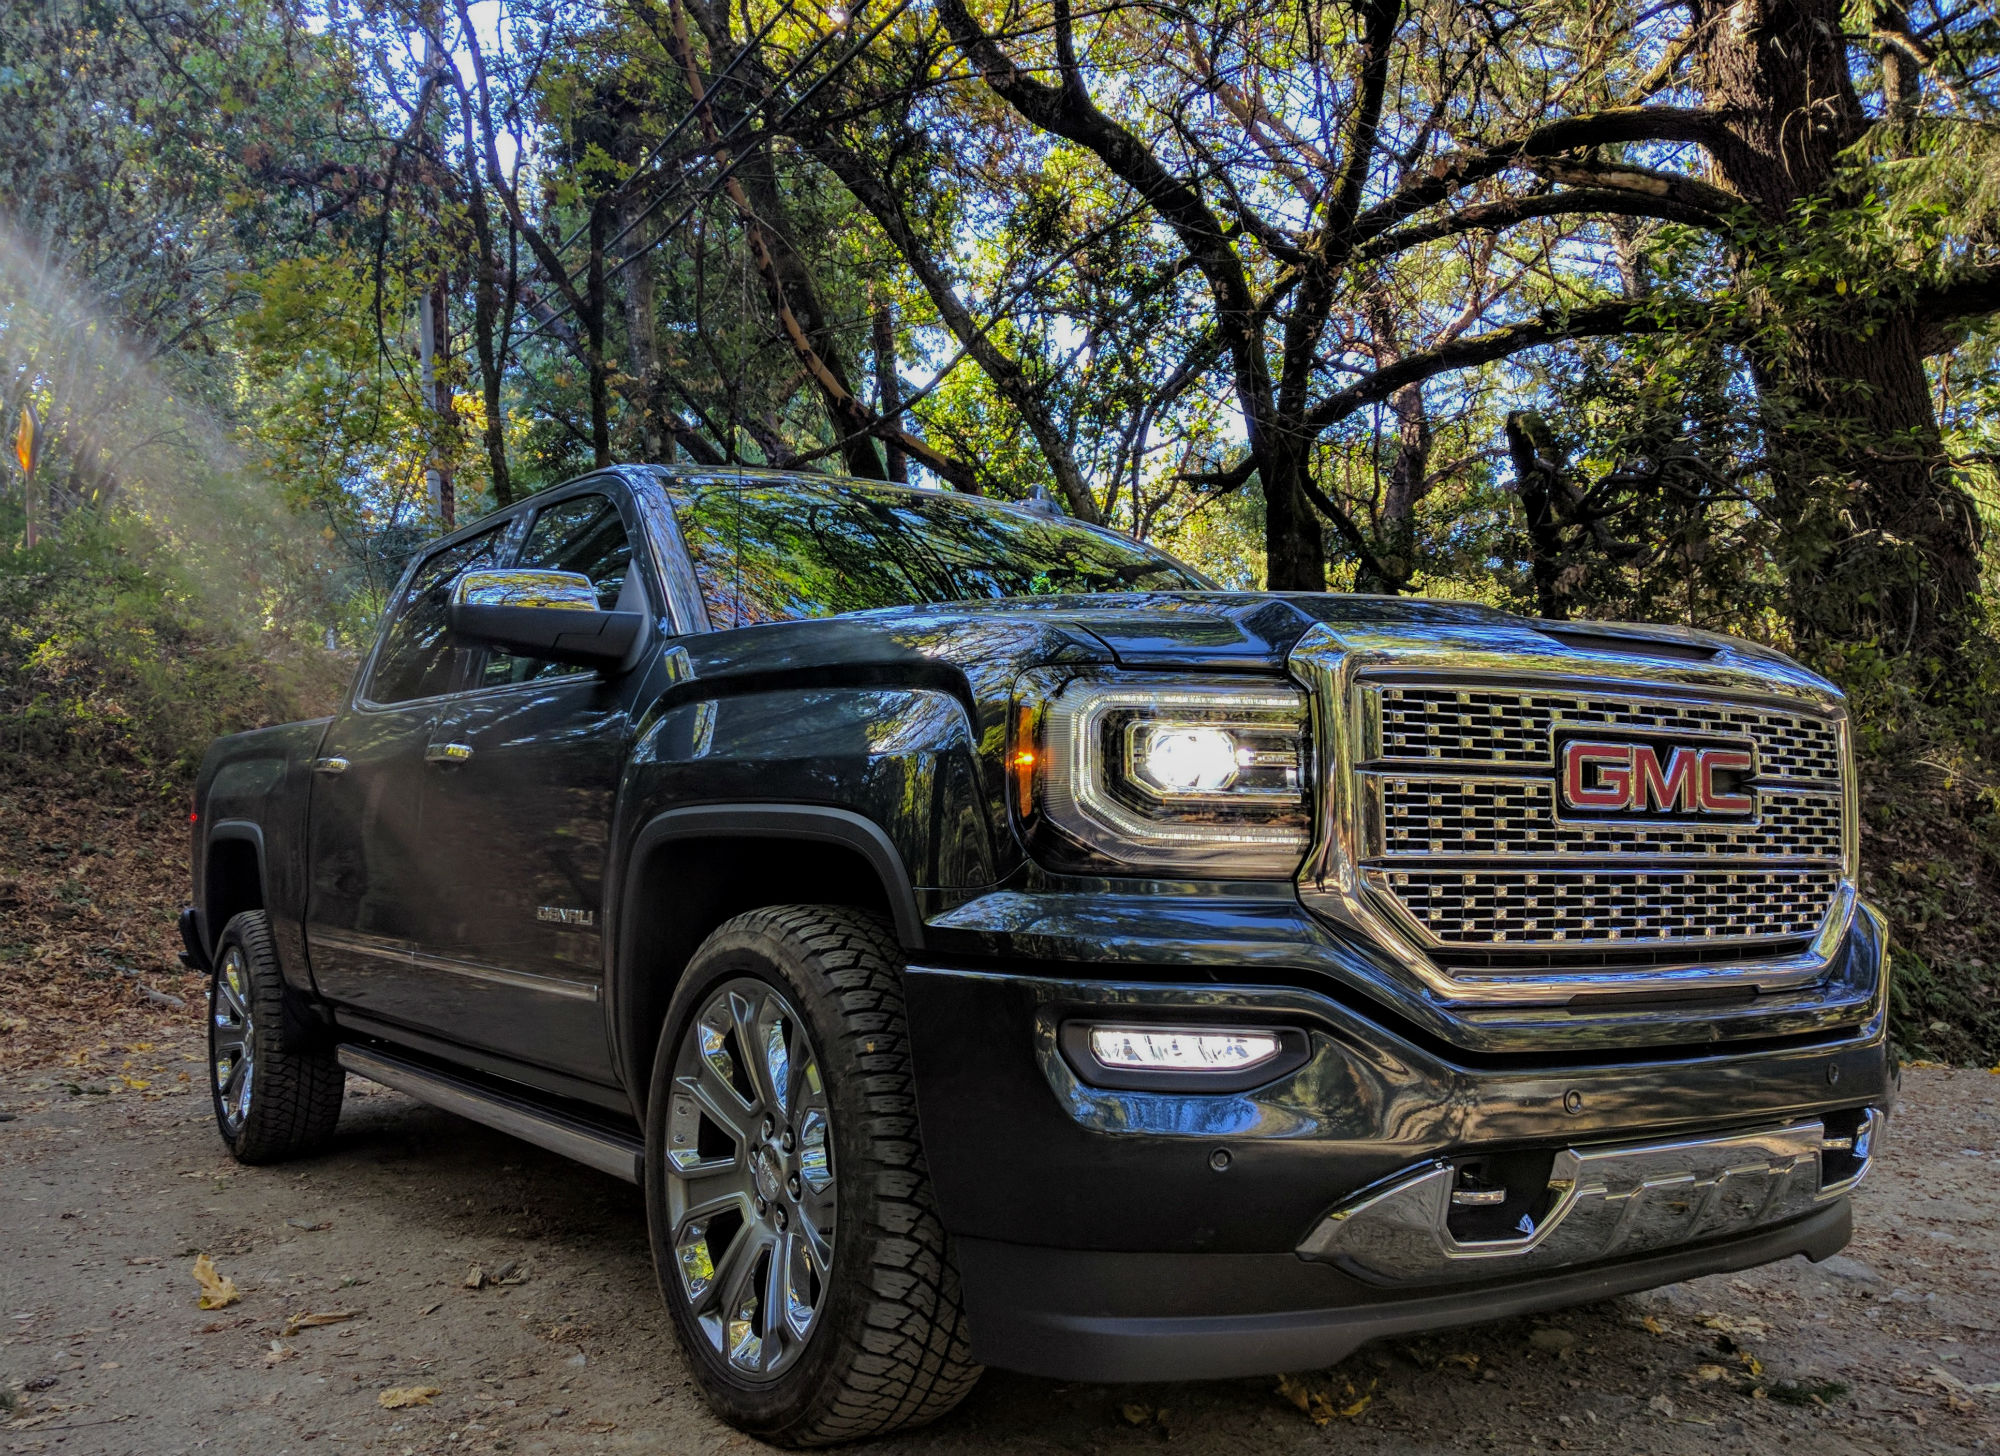 2018 Gmc Sierra Denali Review Exploring The Redwoods The Ignition Blog